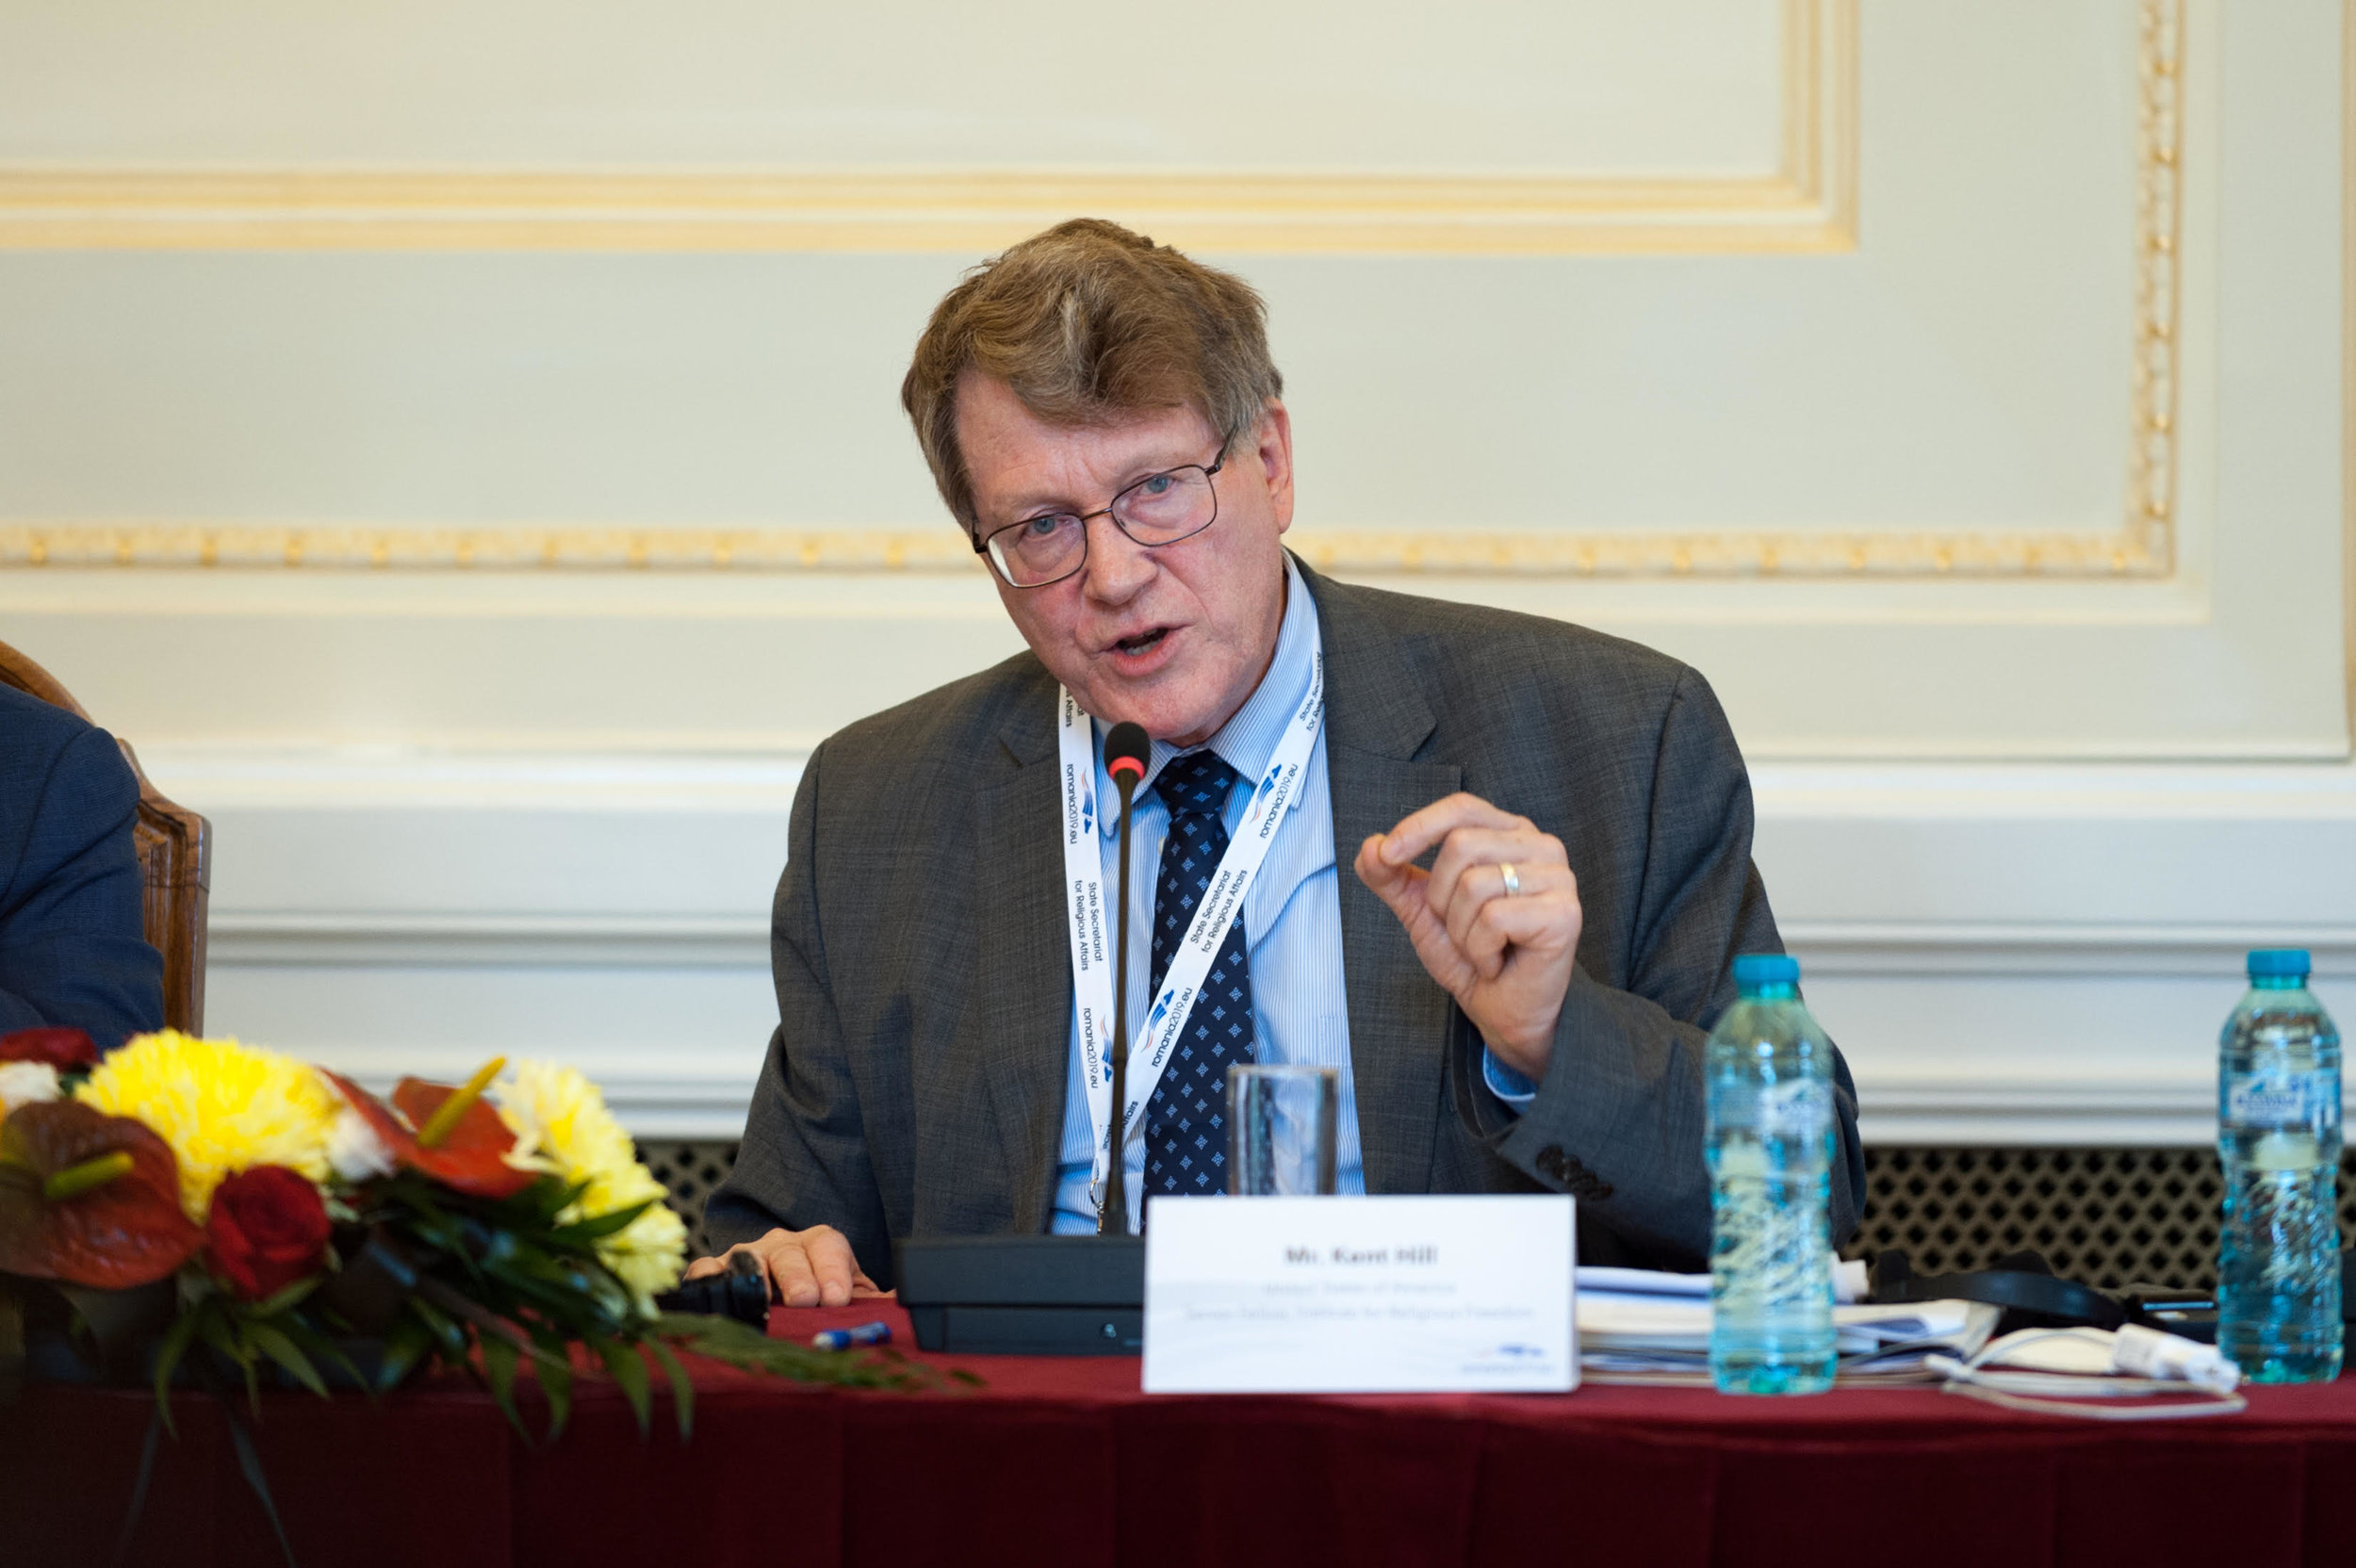 Kent Hill, Senior Fellow for Eurasia, Middle East, and Islam delivers remarks in Bucharest, Romania.